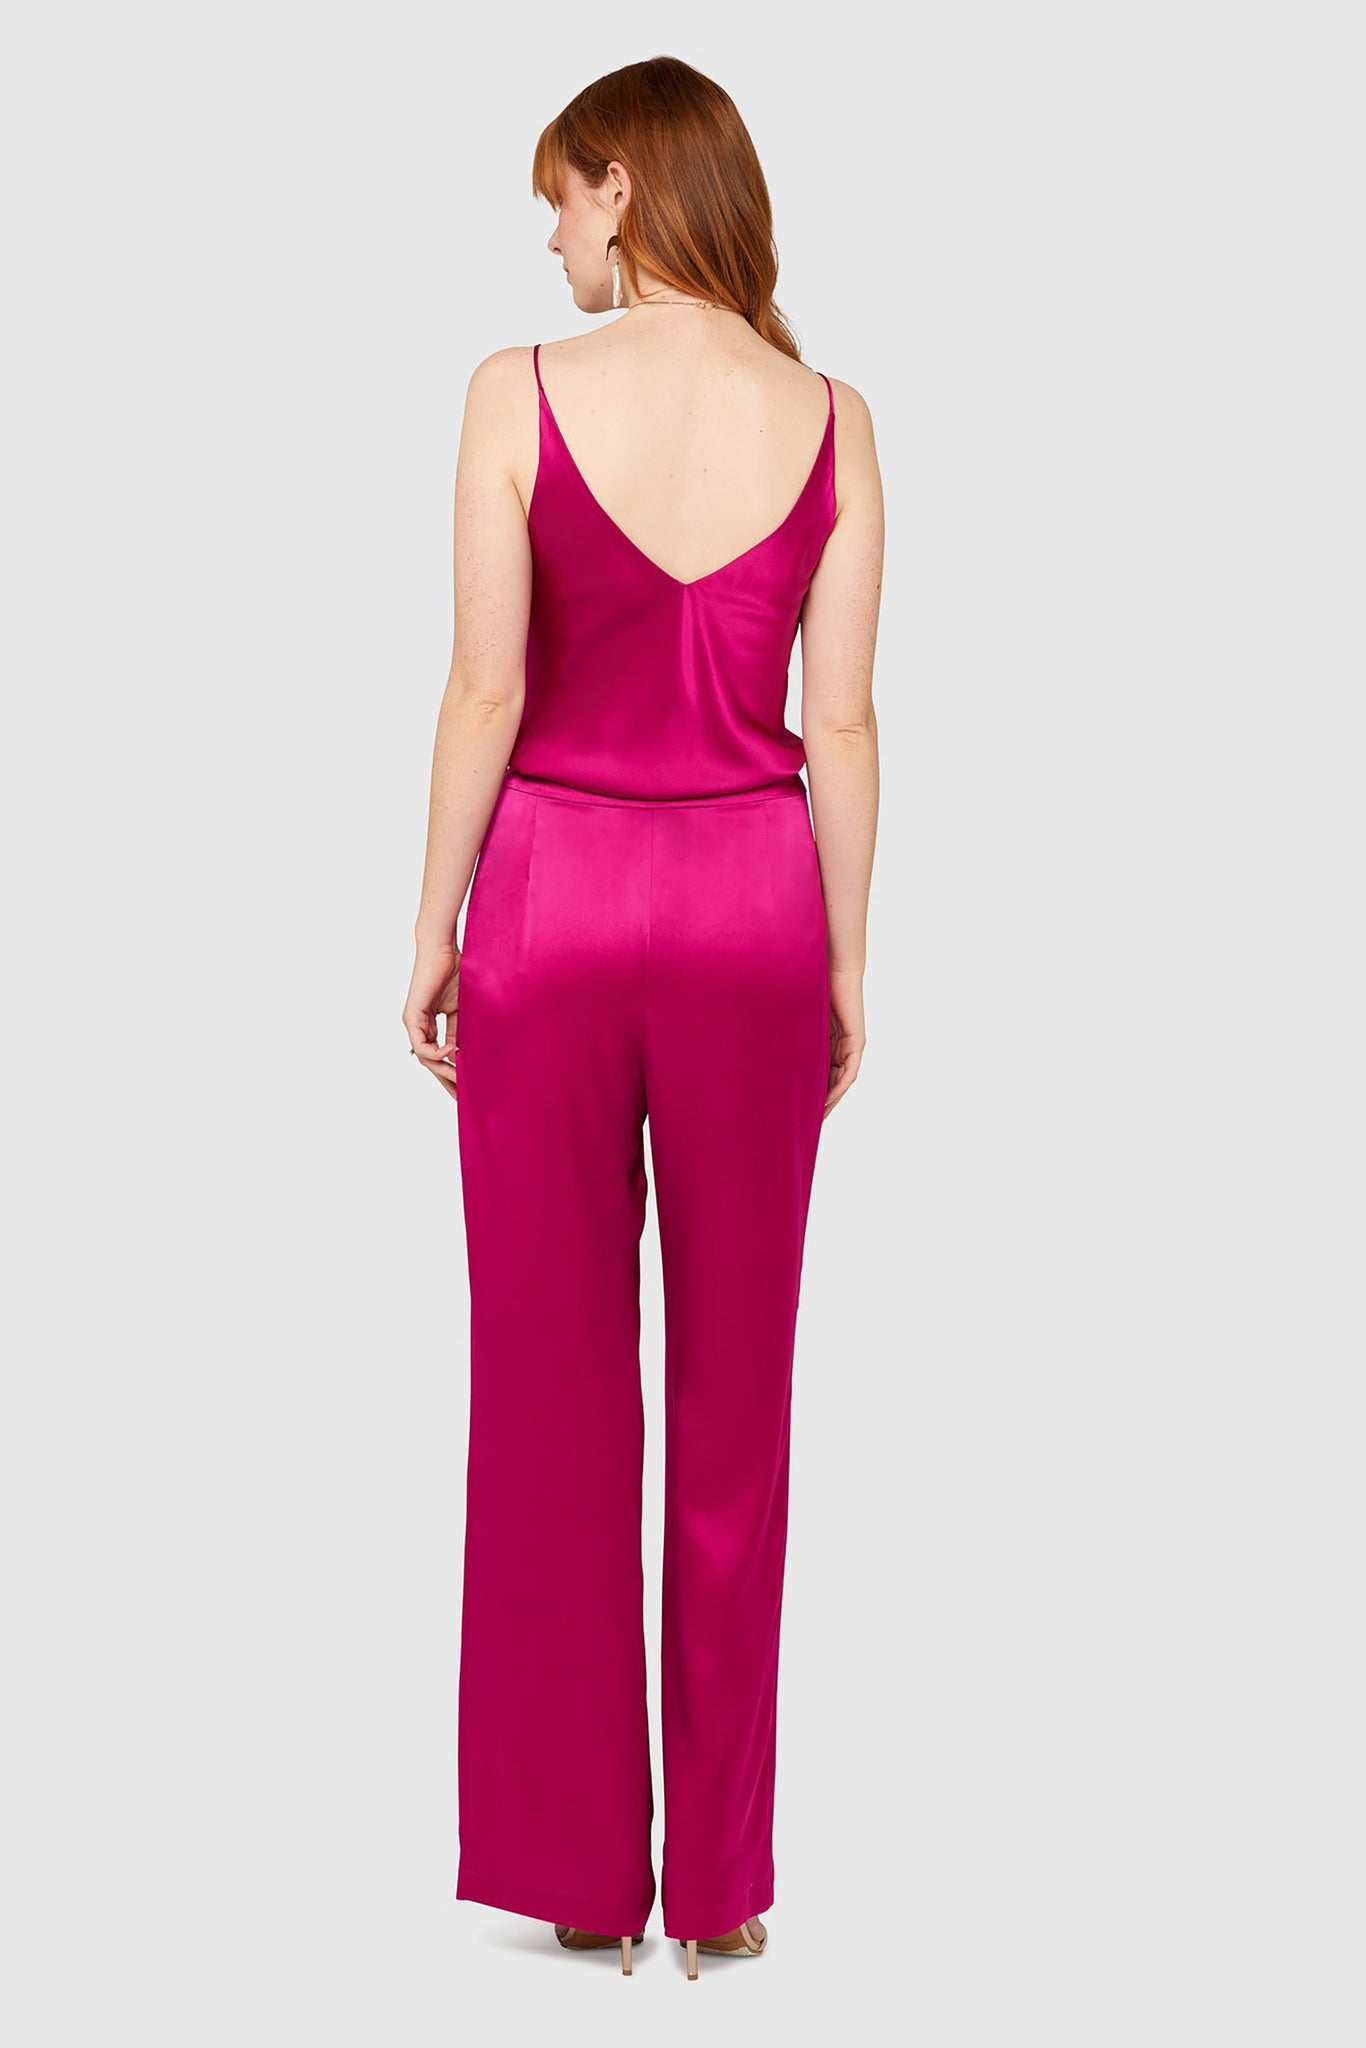 Cerise High Waisted Silk Lounge Pants